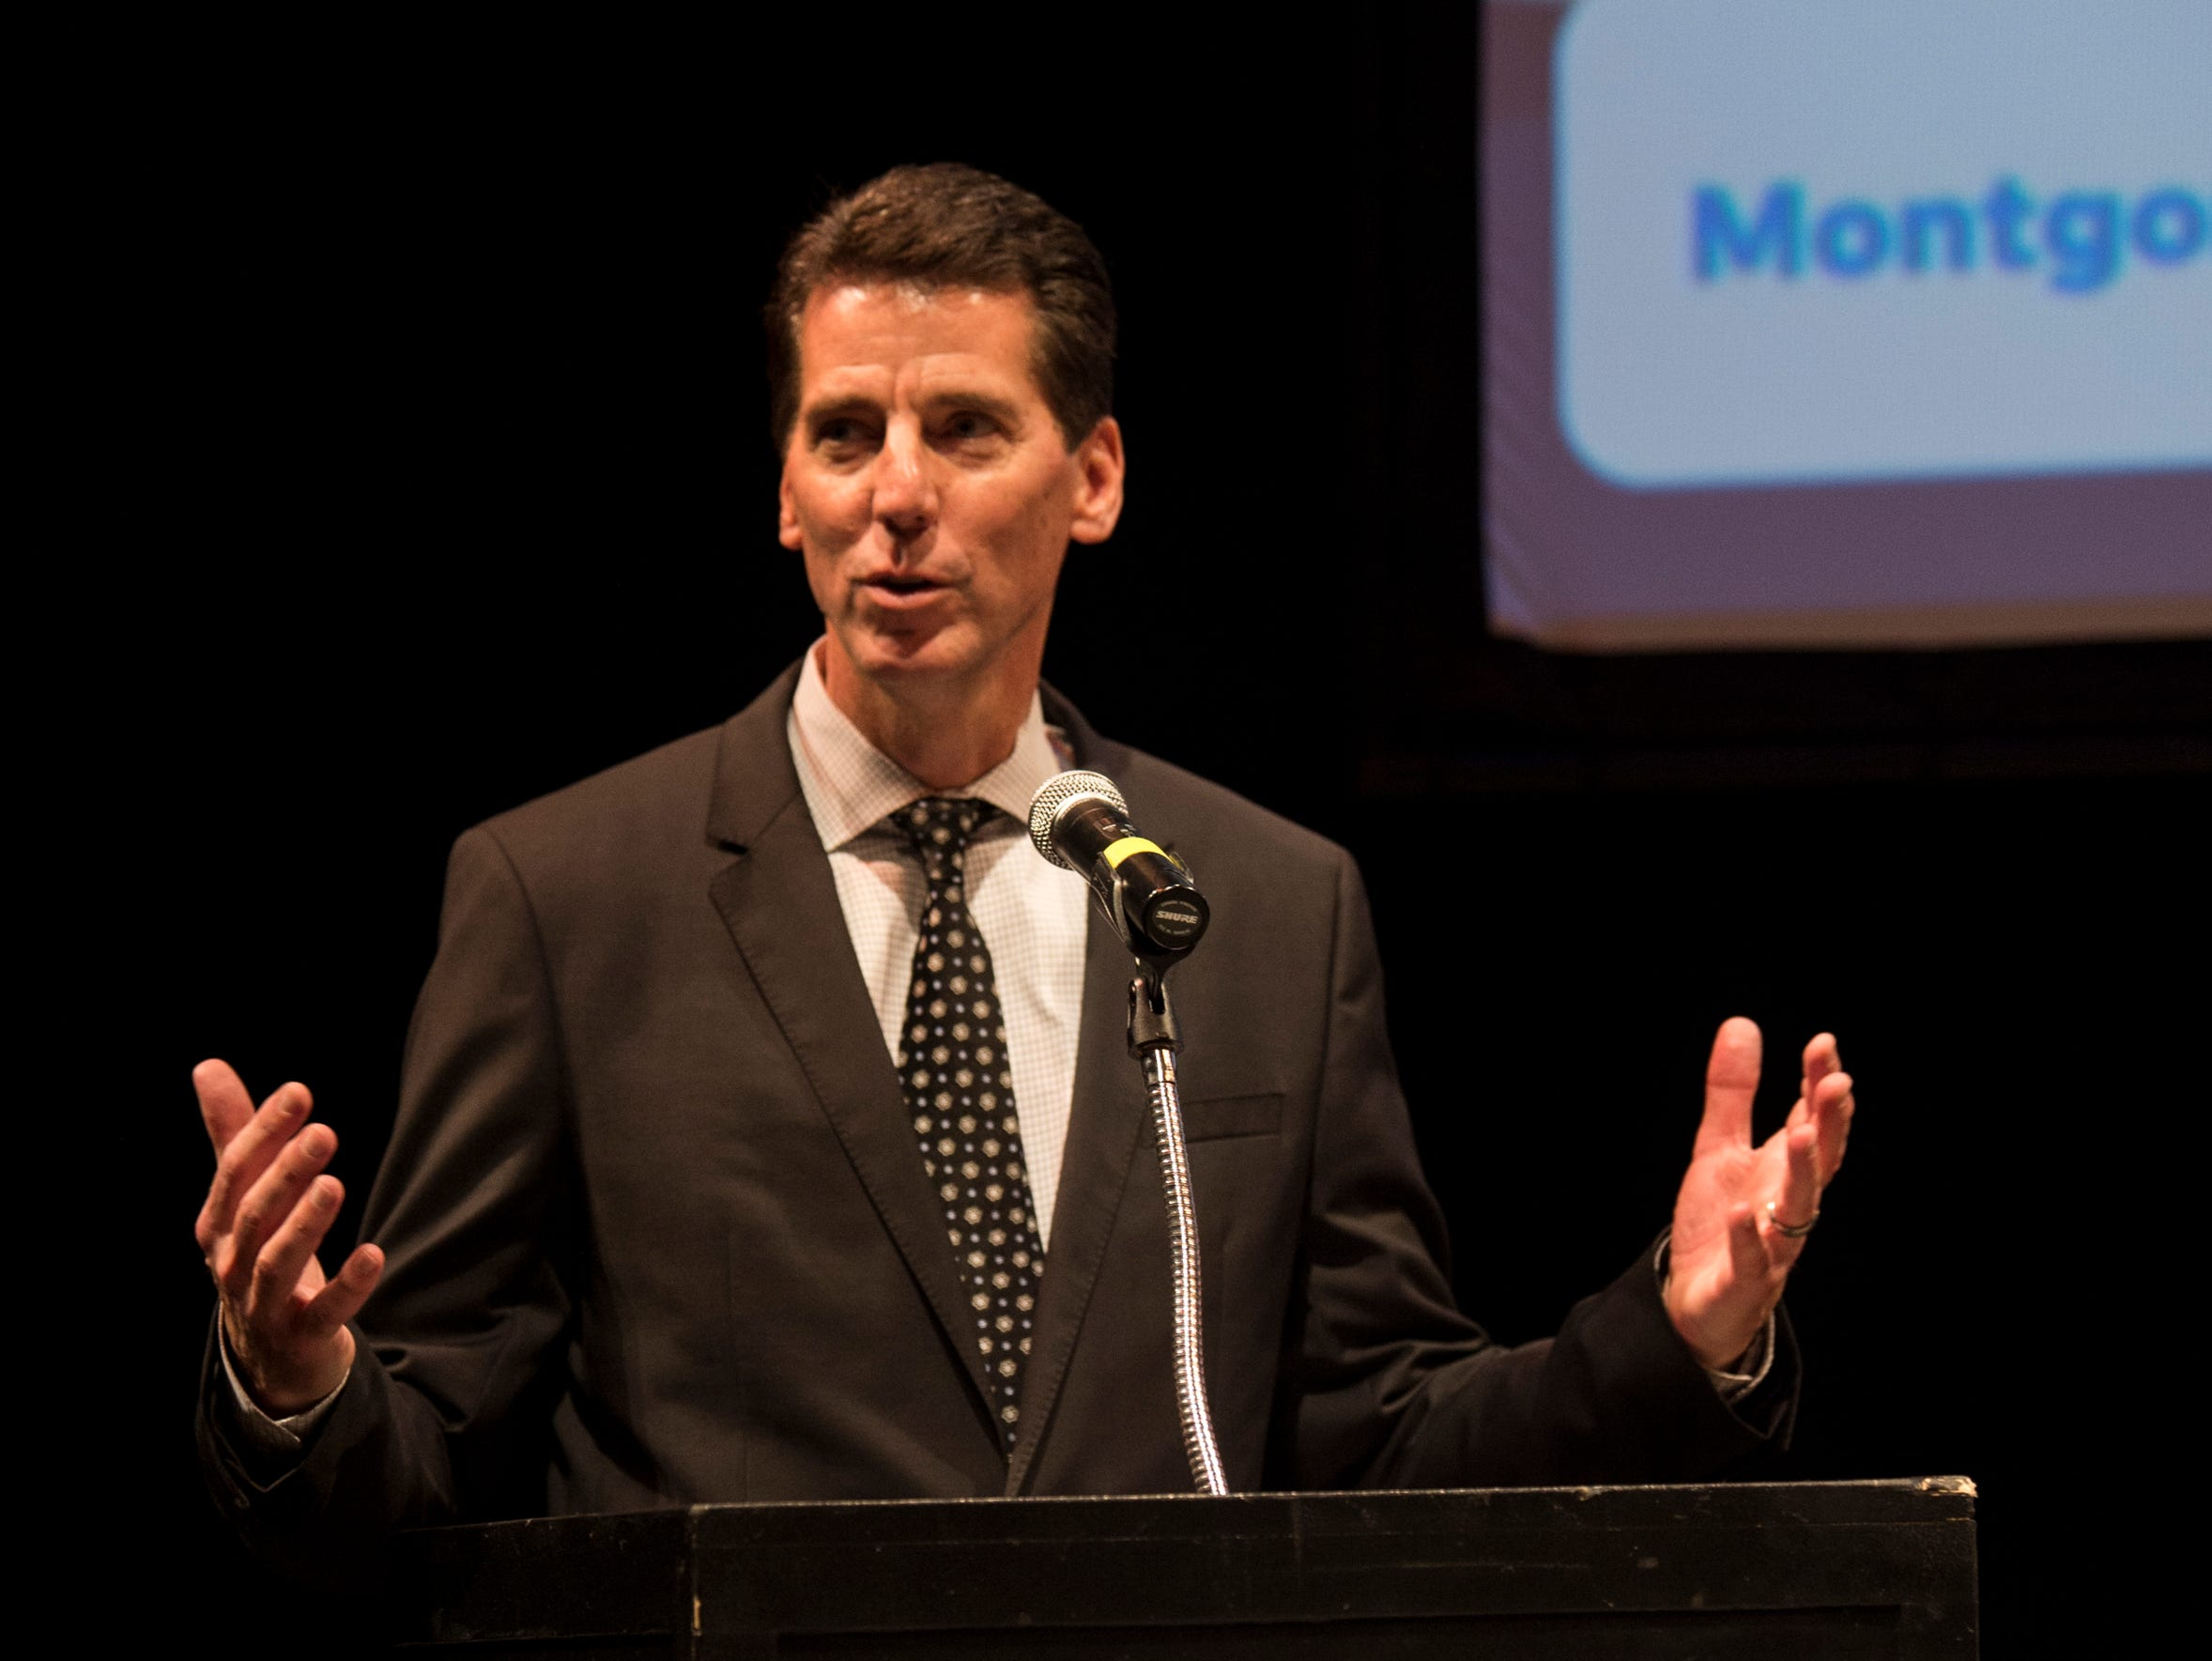 Montgomery Advertiser publisher Michael Galvin speaks during the Community Heroes awards ceremony at Alabama Shakespeare Festival in Montgomery, Ala., on Tuesday, Jan. 8, 2019.